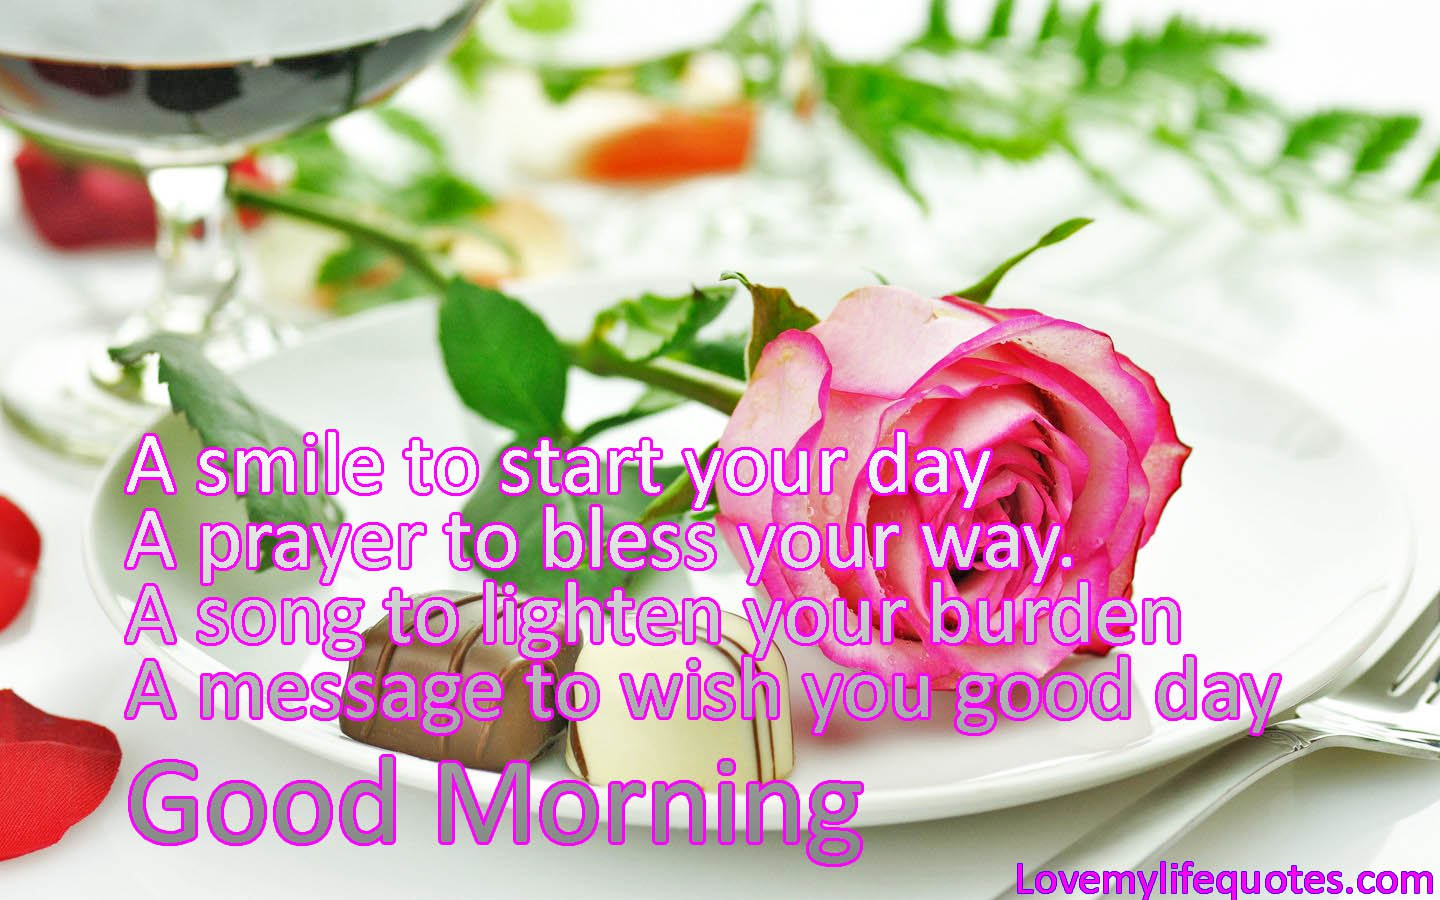 Good Morning Messages To My Girlfriend : Good morning wishes with blessing pictures images page